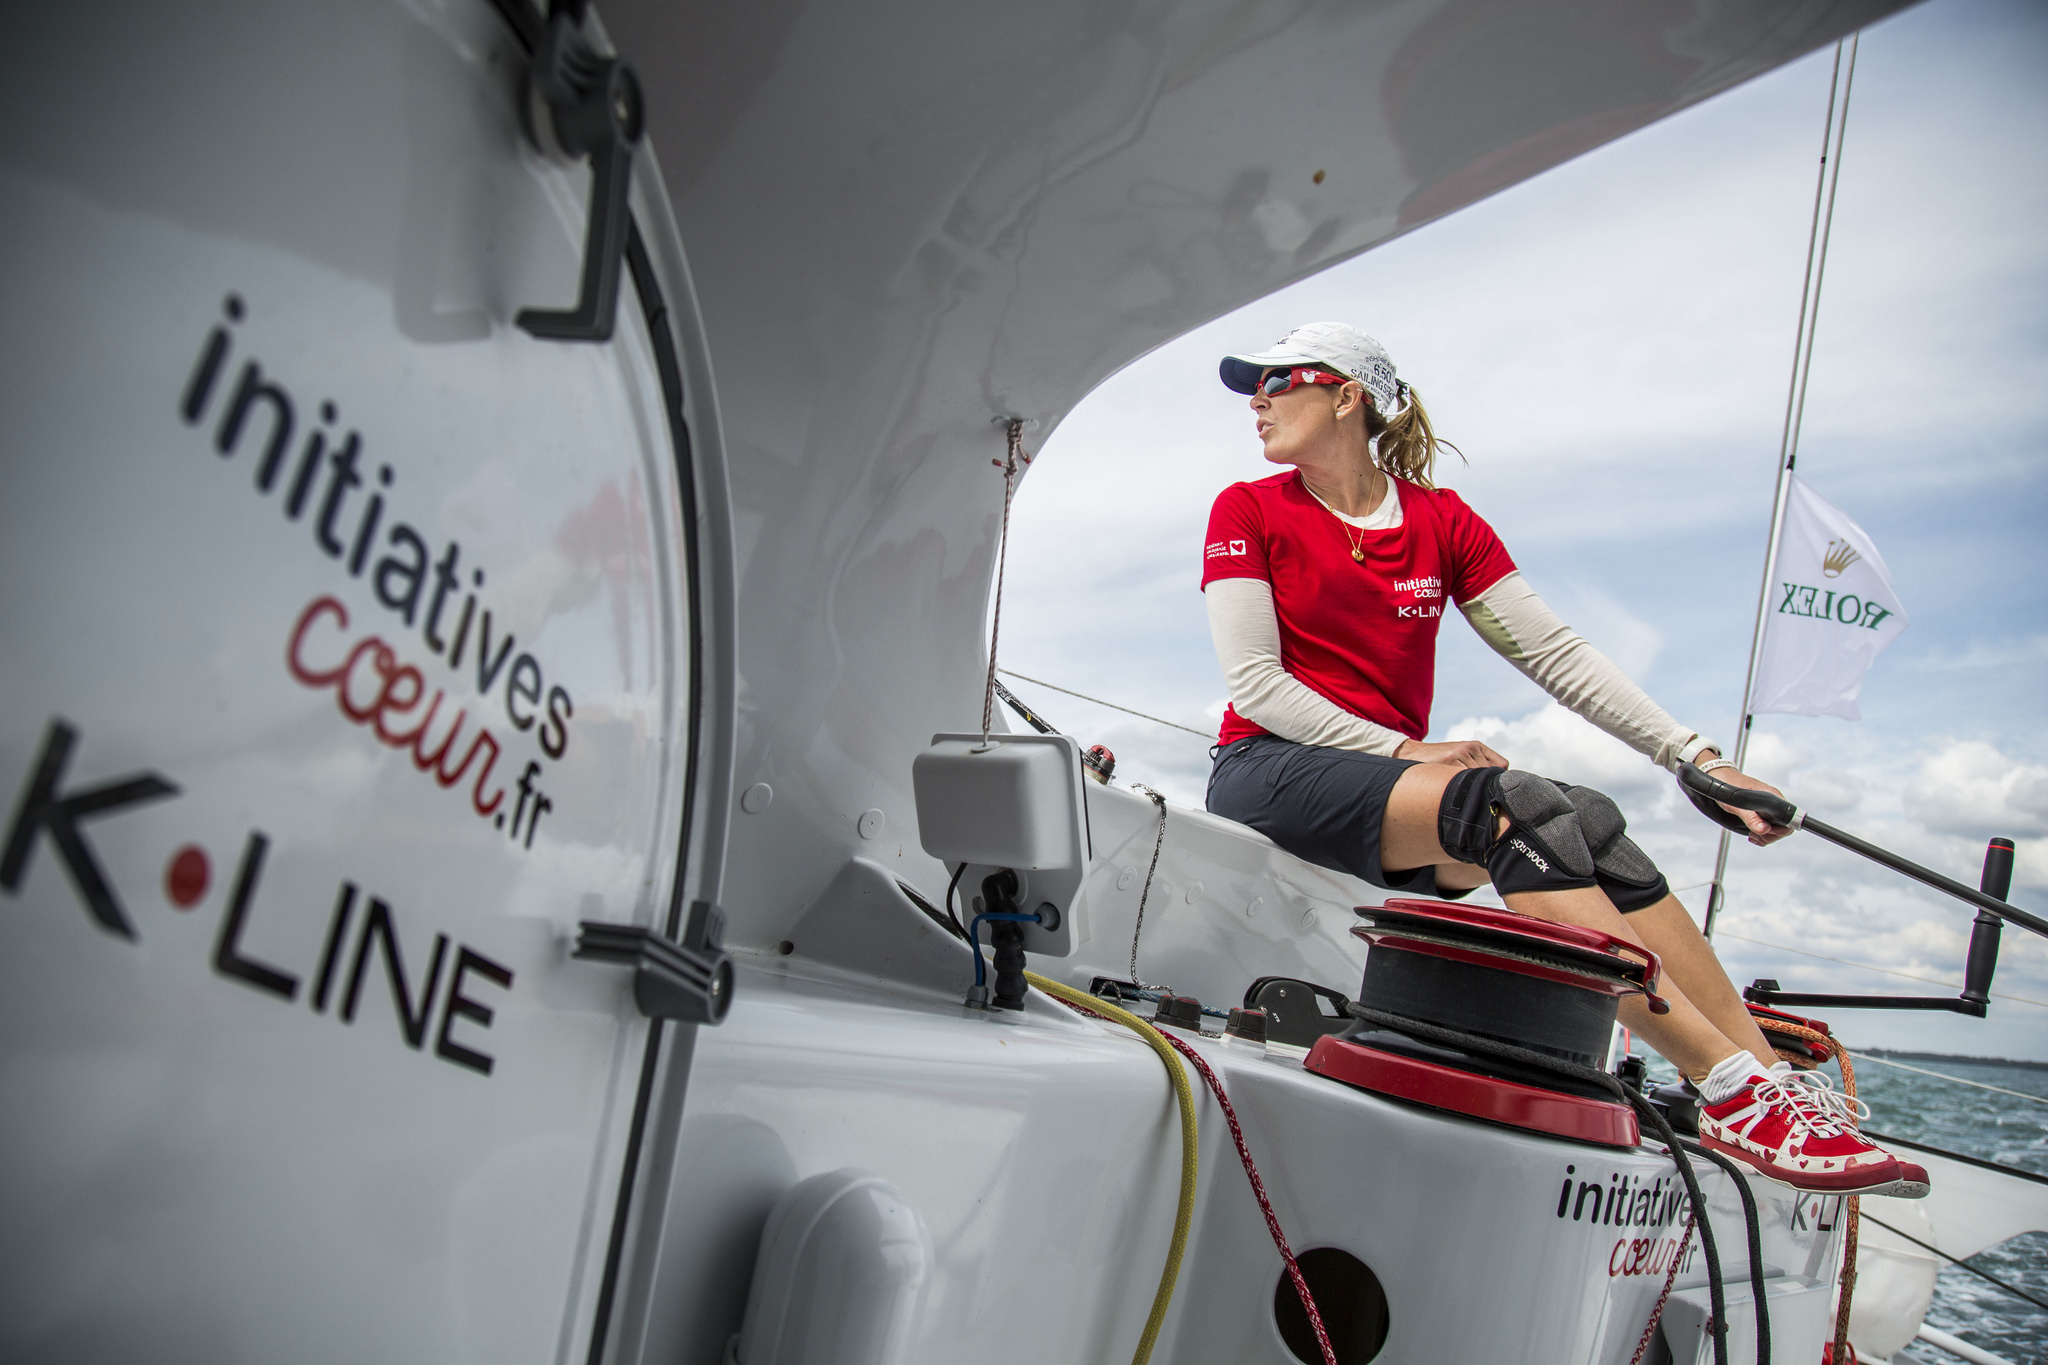 Picture sent to us from Initiatives Coeur of Sam Davies helming the IMOCA 60. Credit: Initiatives Coeur